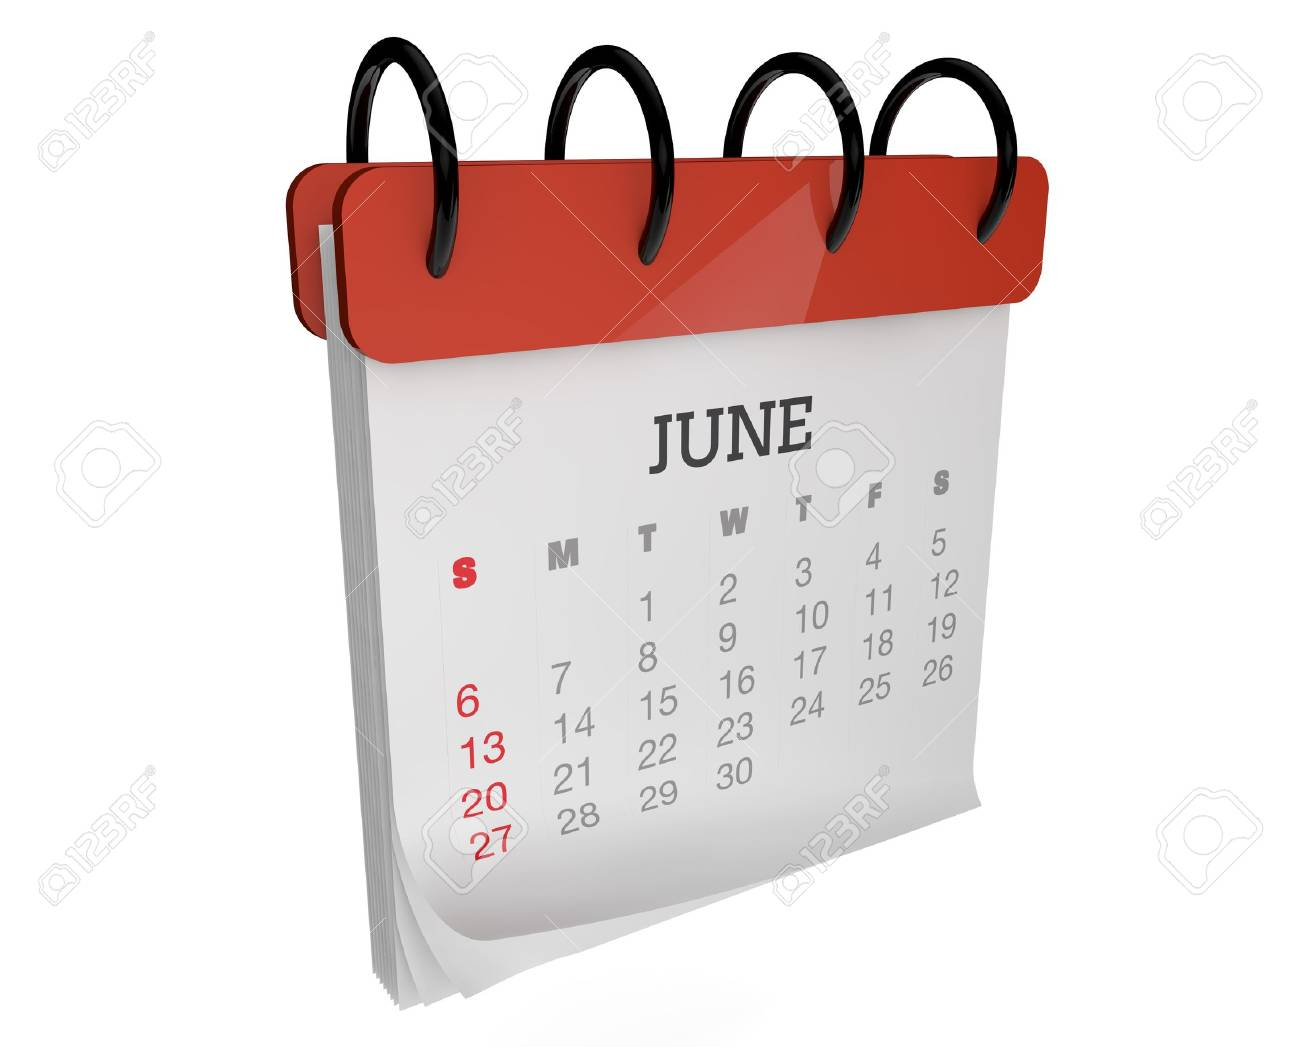 render of an square calendar june month Stock Photo - 15542427